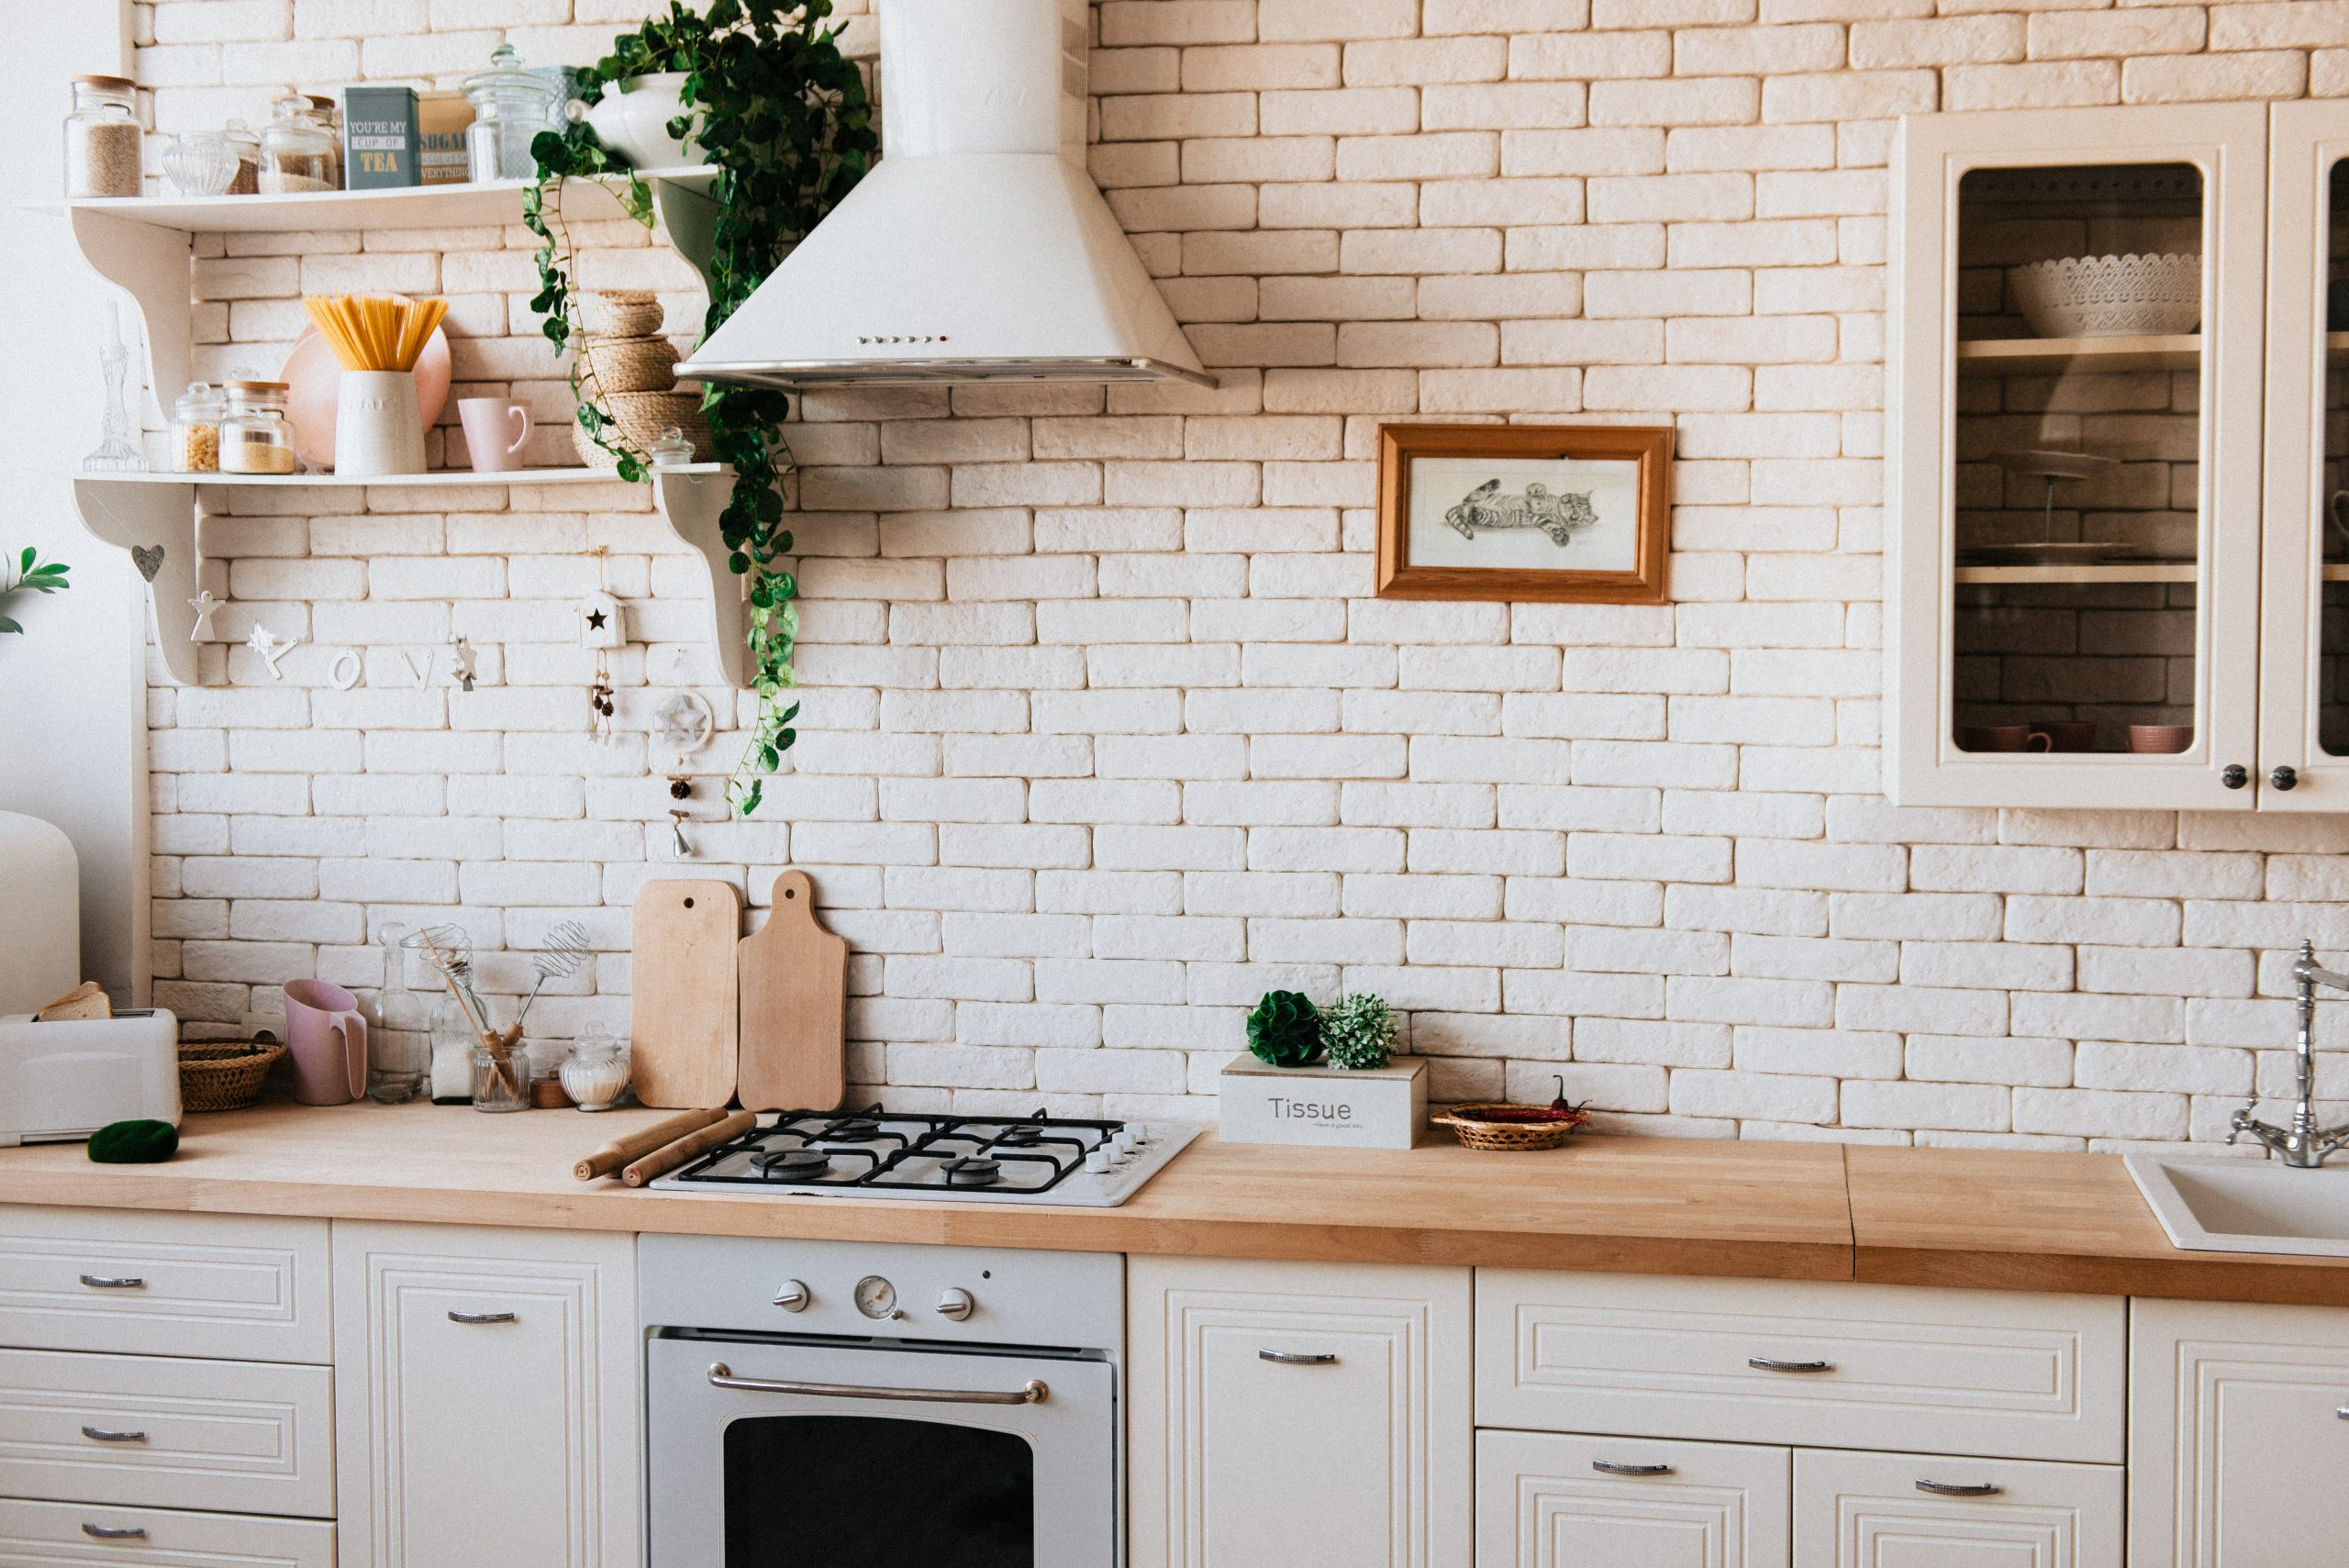 4 Kitchen Improvements Worth Considering